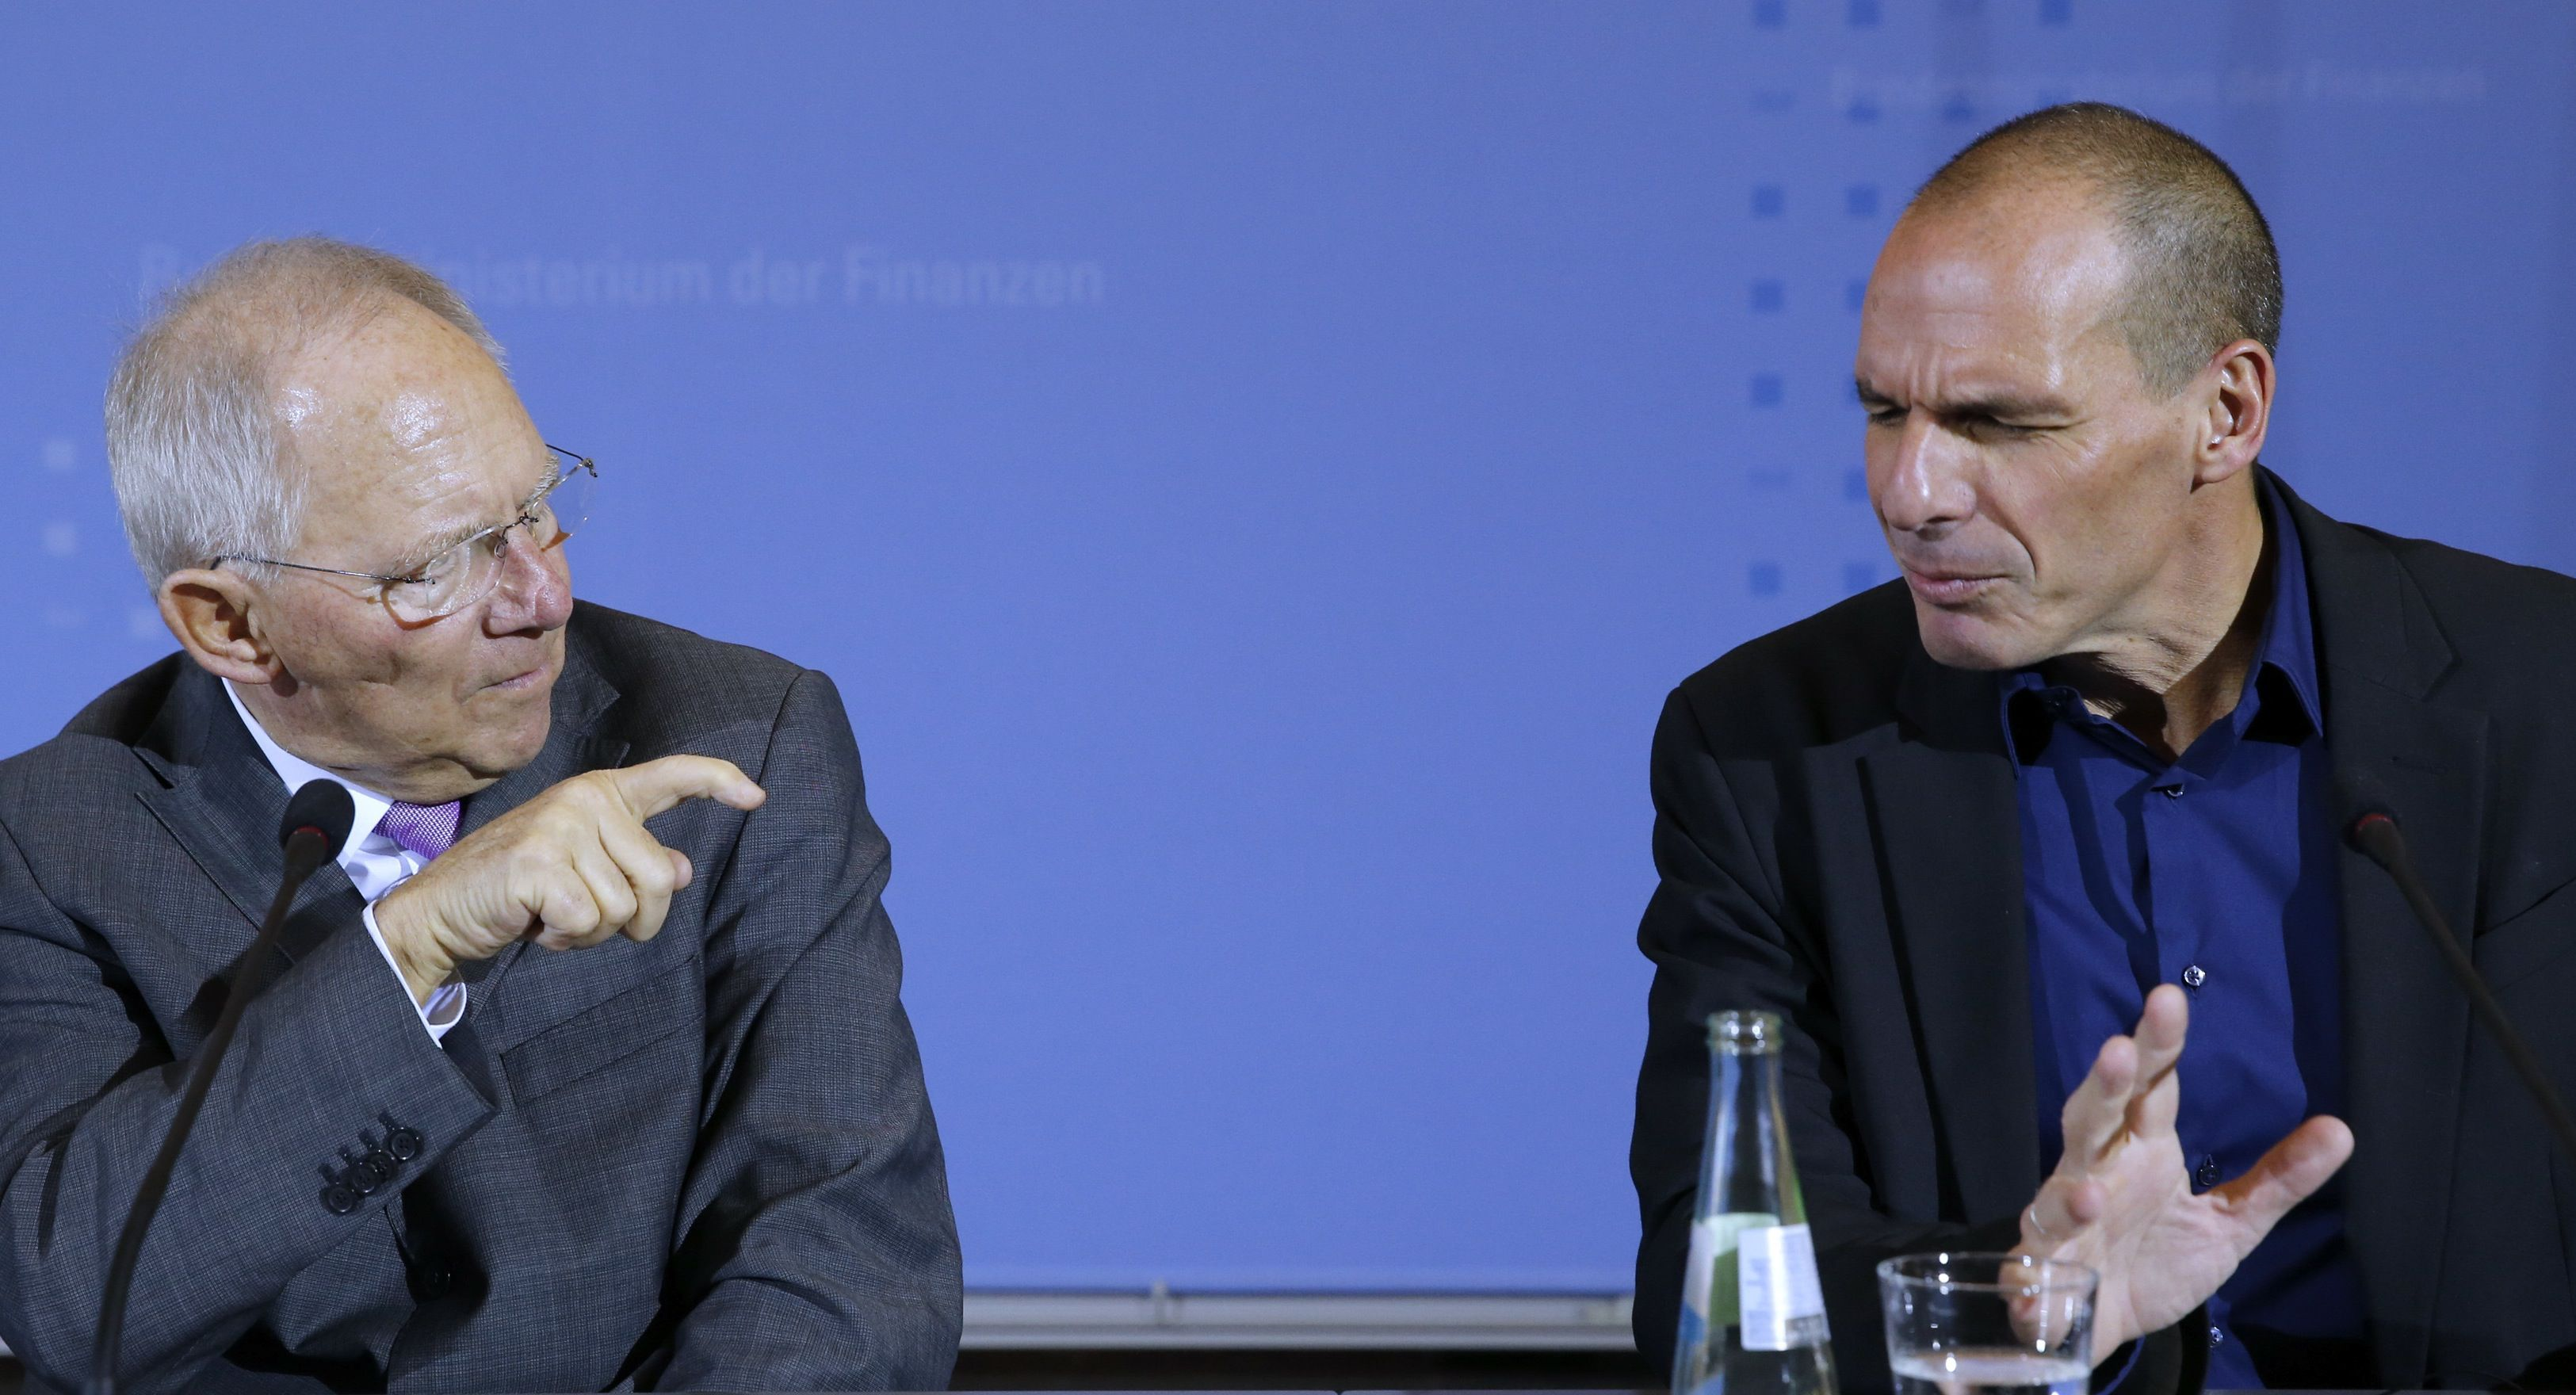 Greek Finance Minister Yanis Varoufakis and German Finance Minister Wolfgang Schaeuble (L) address a news conference following talks at the finance ministry in Berlin February 5, 2015. Promising to end five years of austerity, Greek Prime Minister Alexis Tsipras and Varoufakis, are meeting senior officials across Europe to seek support for a new debt agreement.    REUTERS/Fabrizio Bensch (GERMANY  - Tags: BUSINESS POLITICS TPX IMAGES OF THE DAY)   - RTR4OC3E